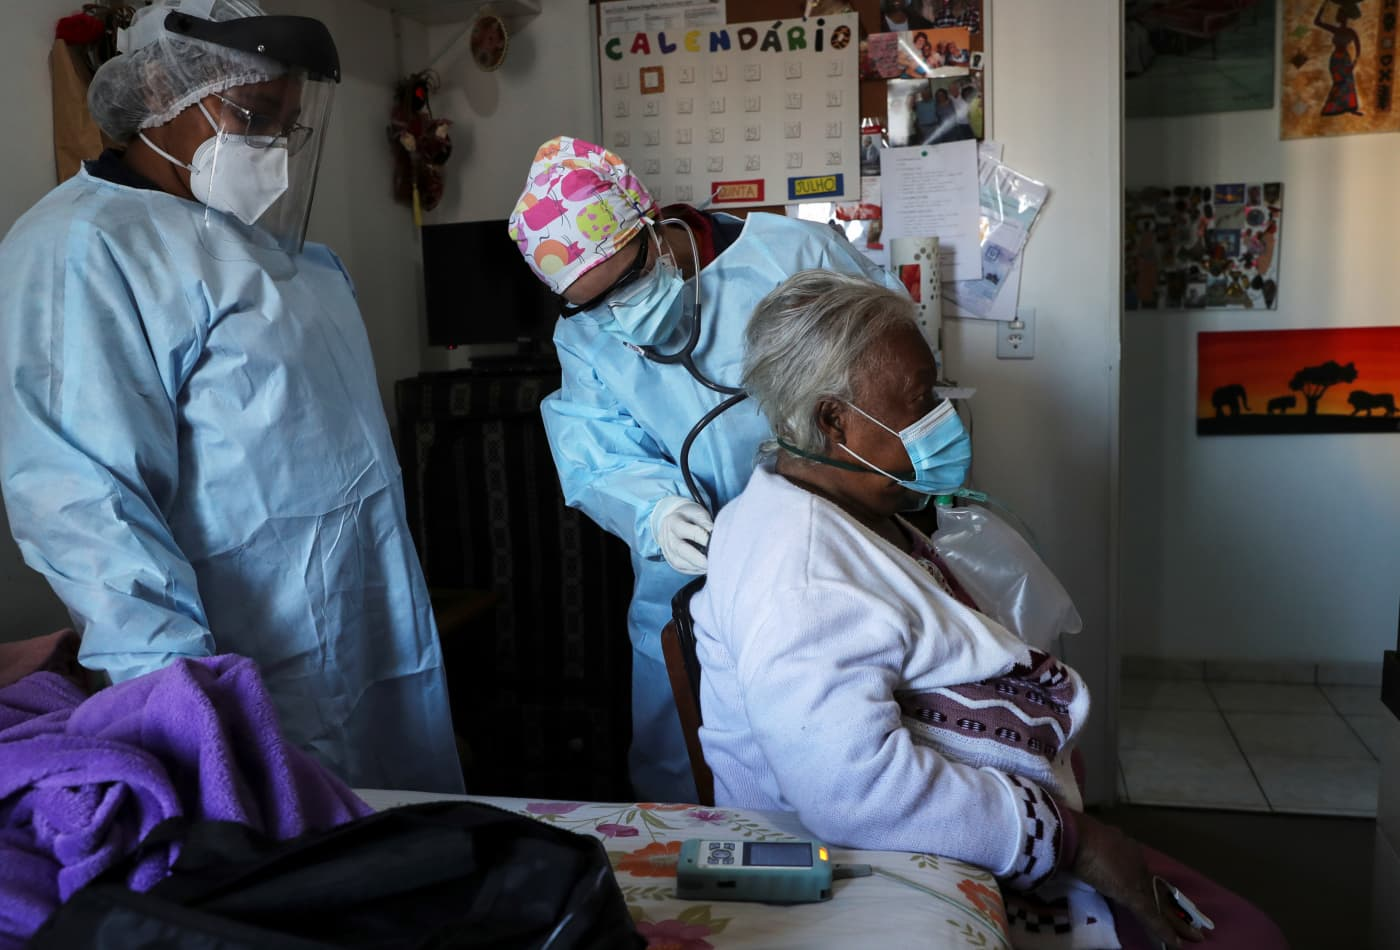 Latin America will see 'record-breaking contraction' as the coronavirus shatters their economies, Goldman says